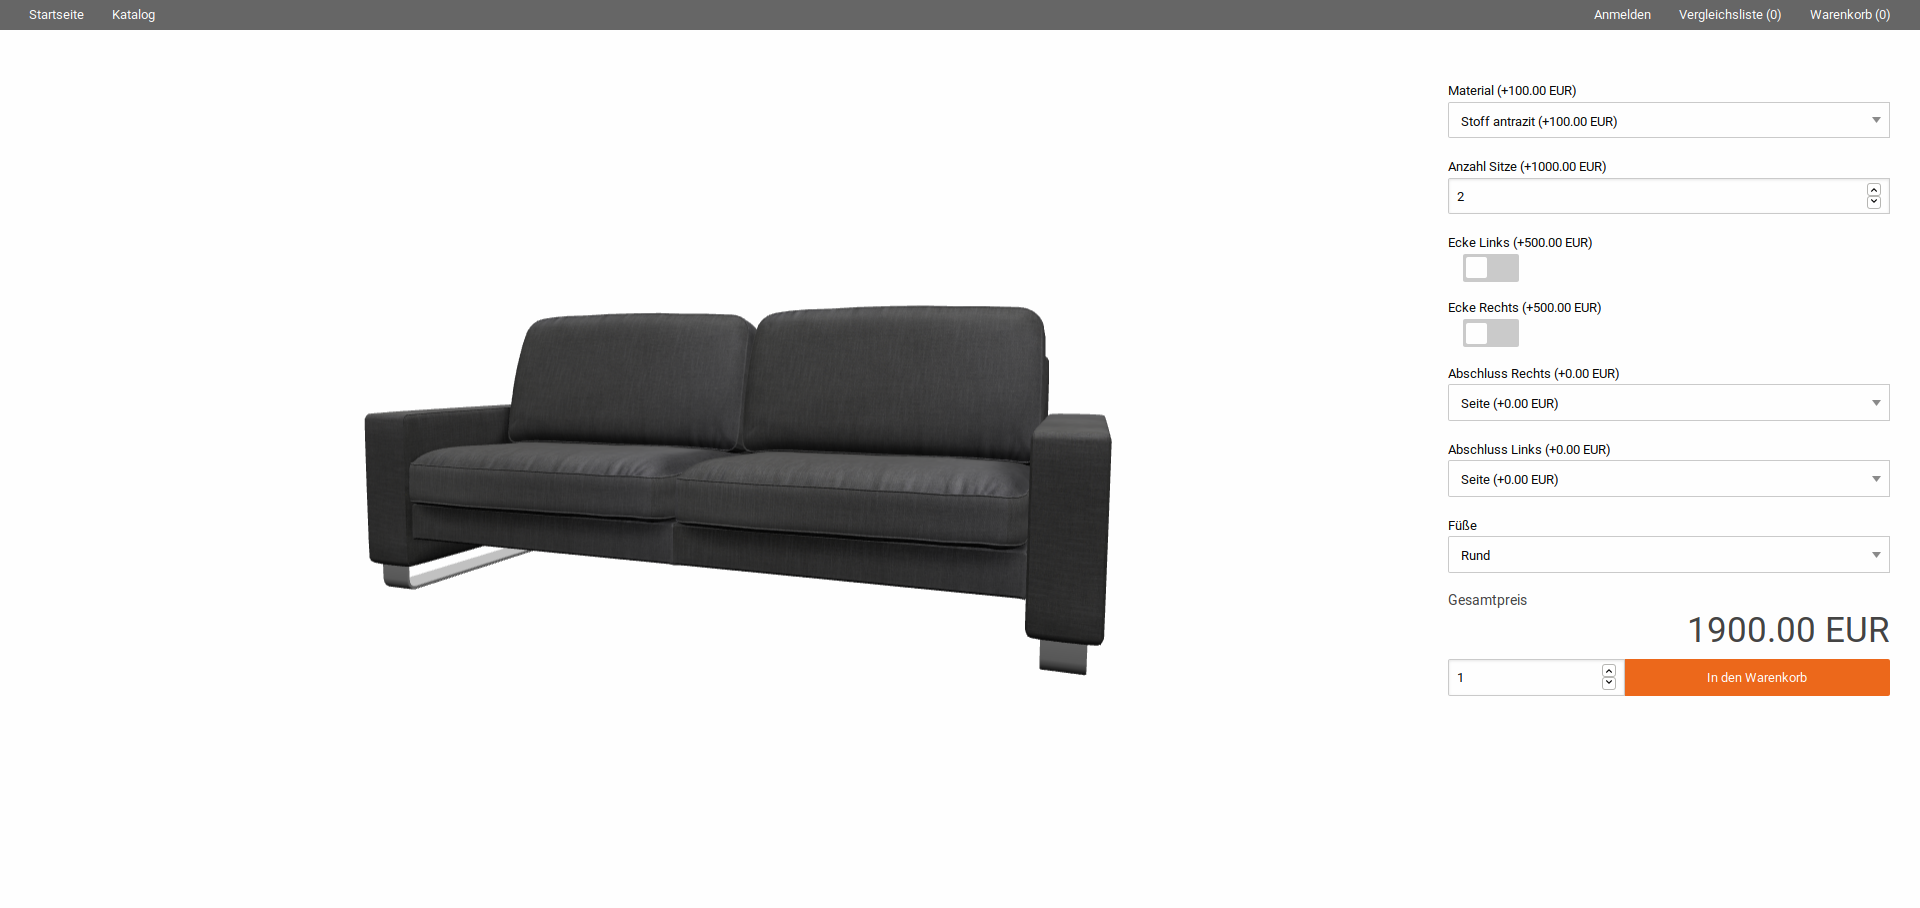 Implementation of the product configuration for the Lipari sofa considering element overview I